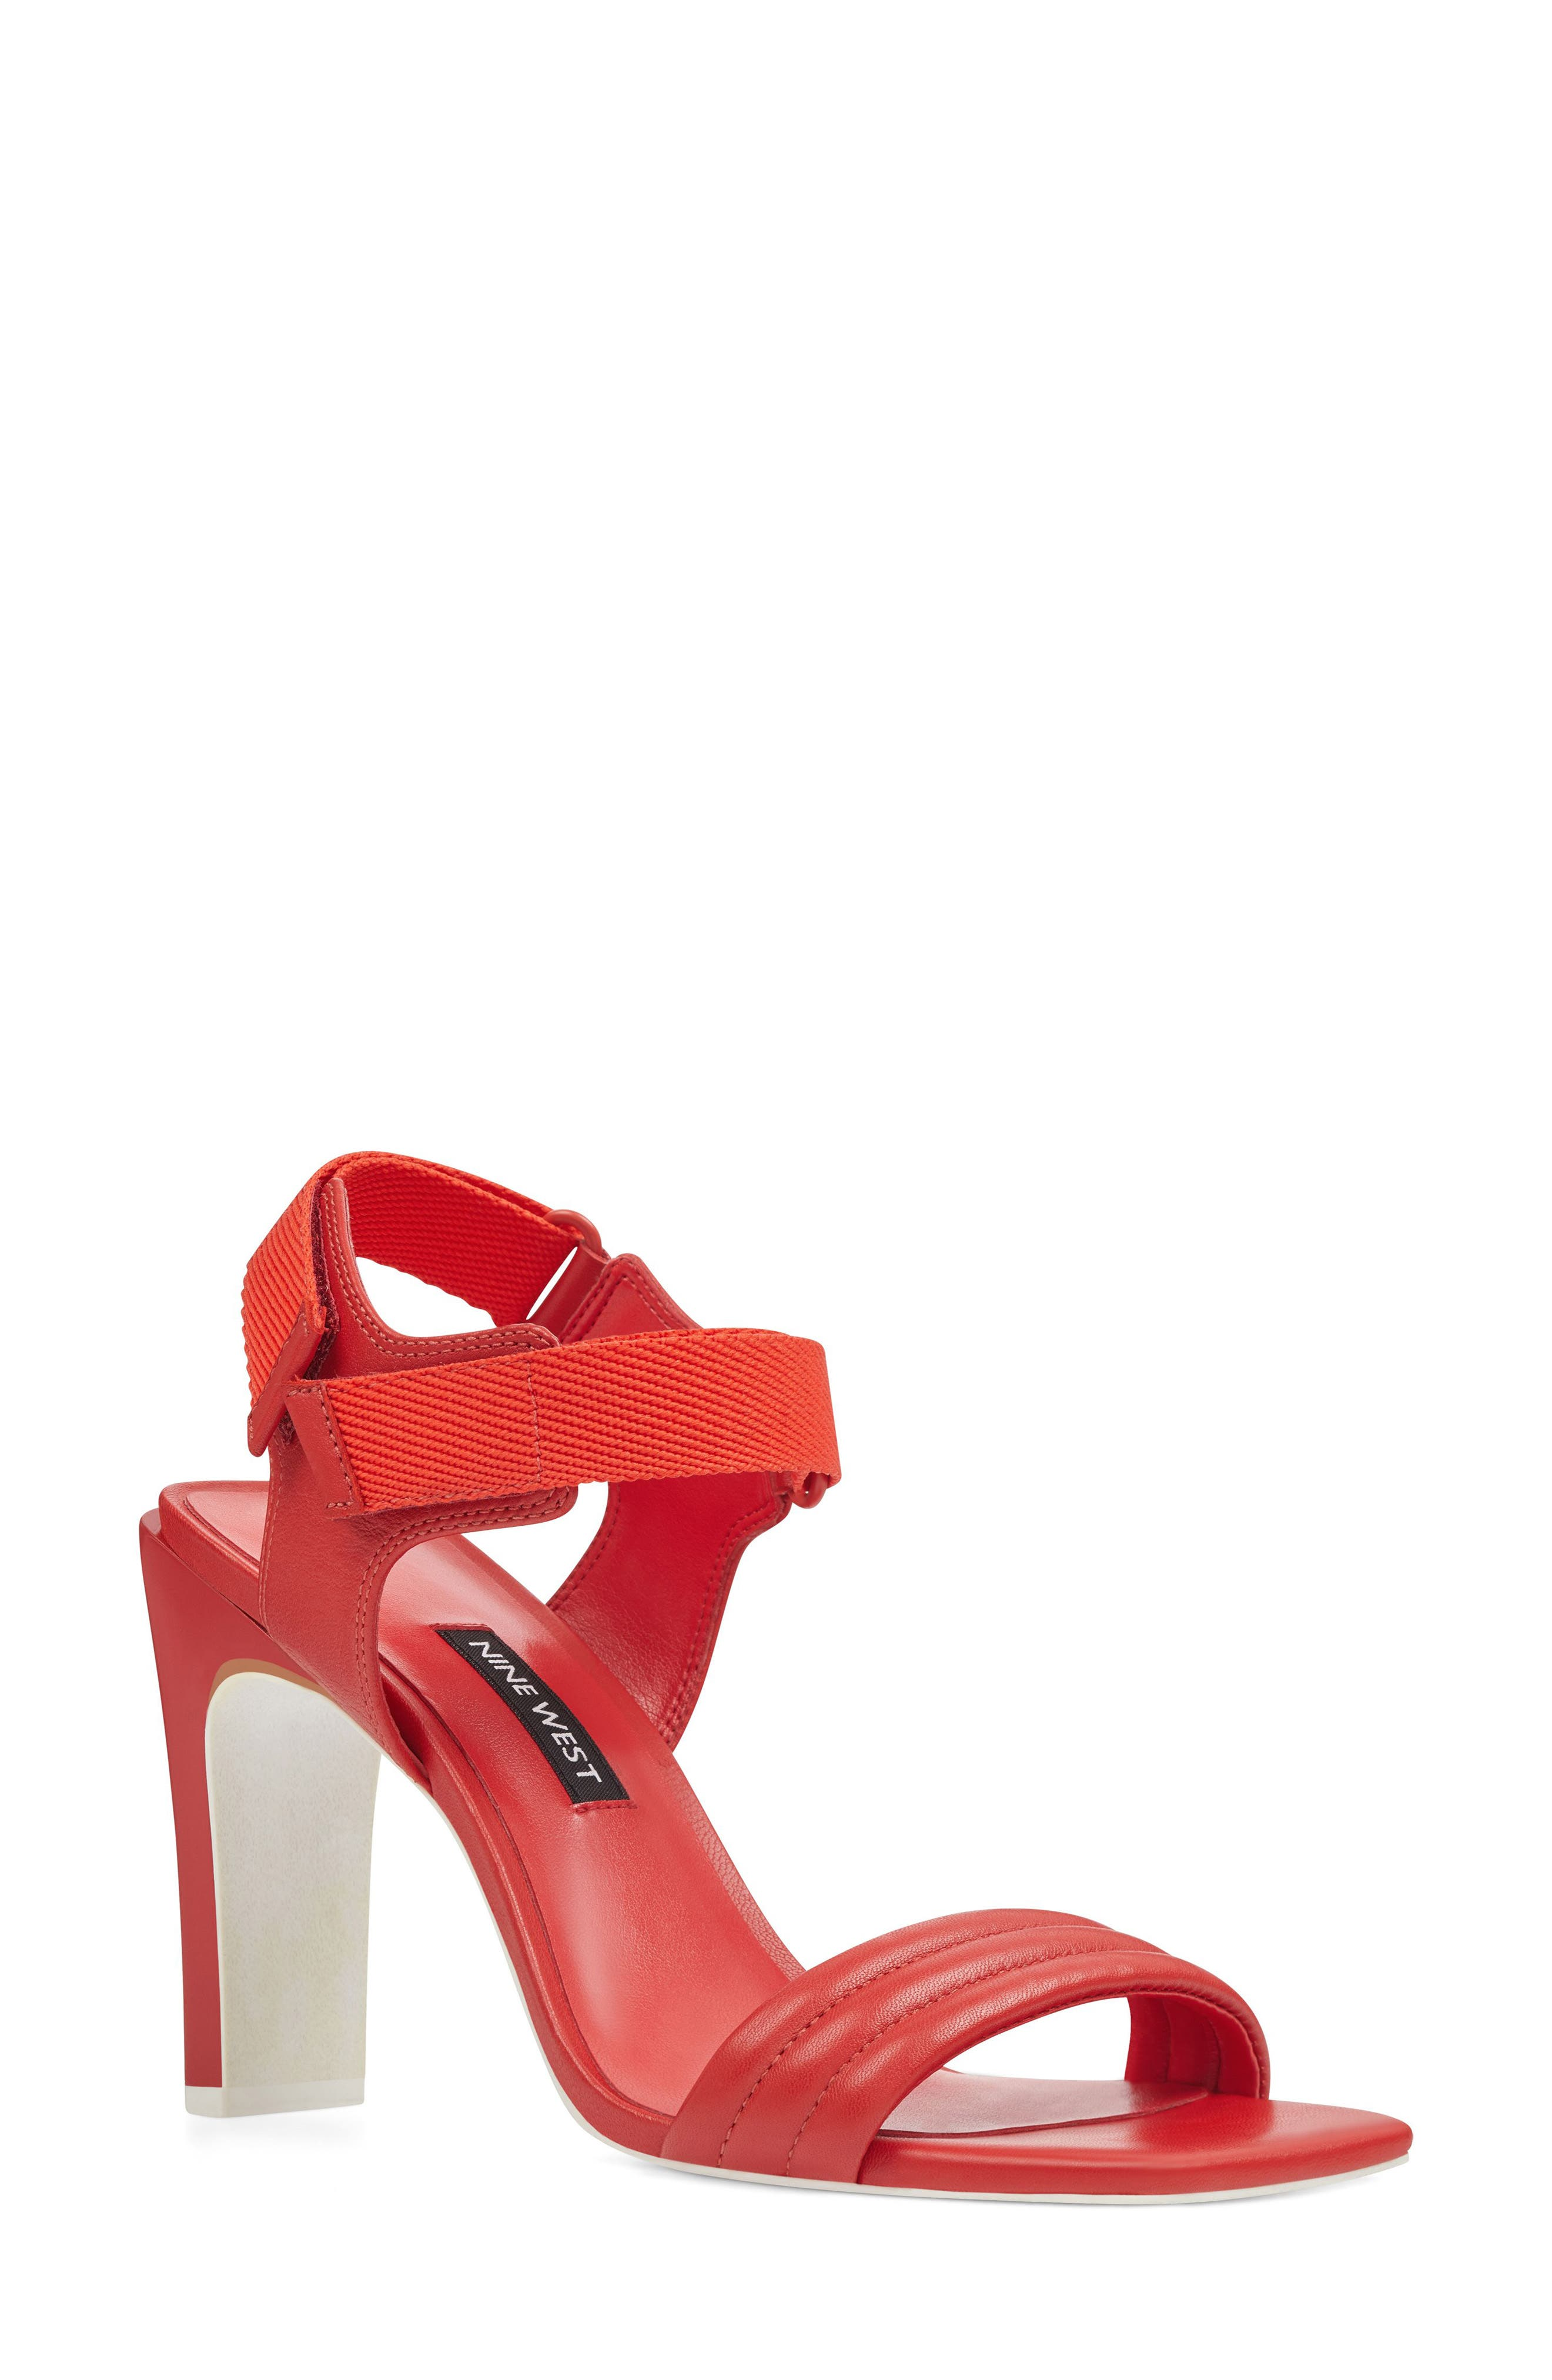 Zebree Sandal,                         Main,                         color, Red Leather